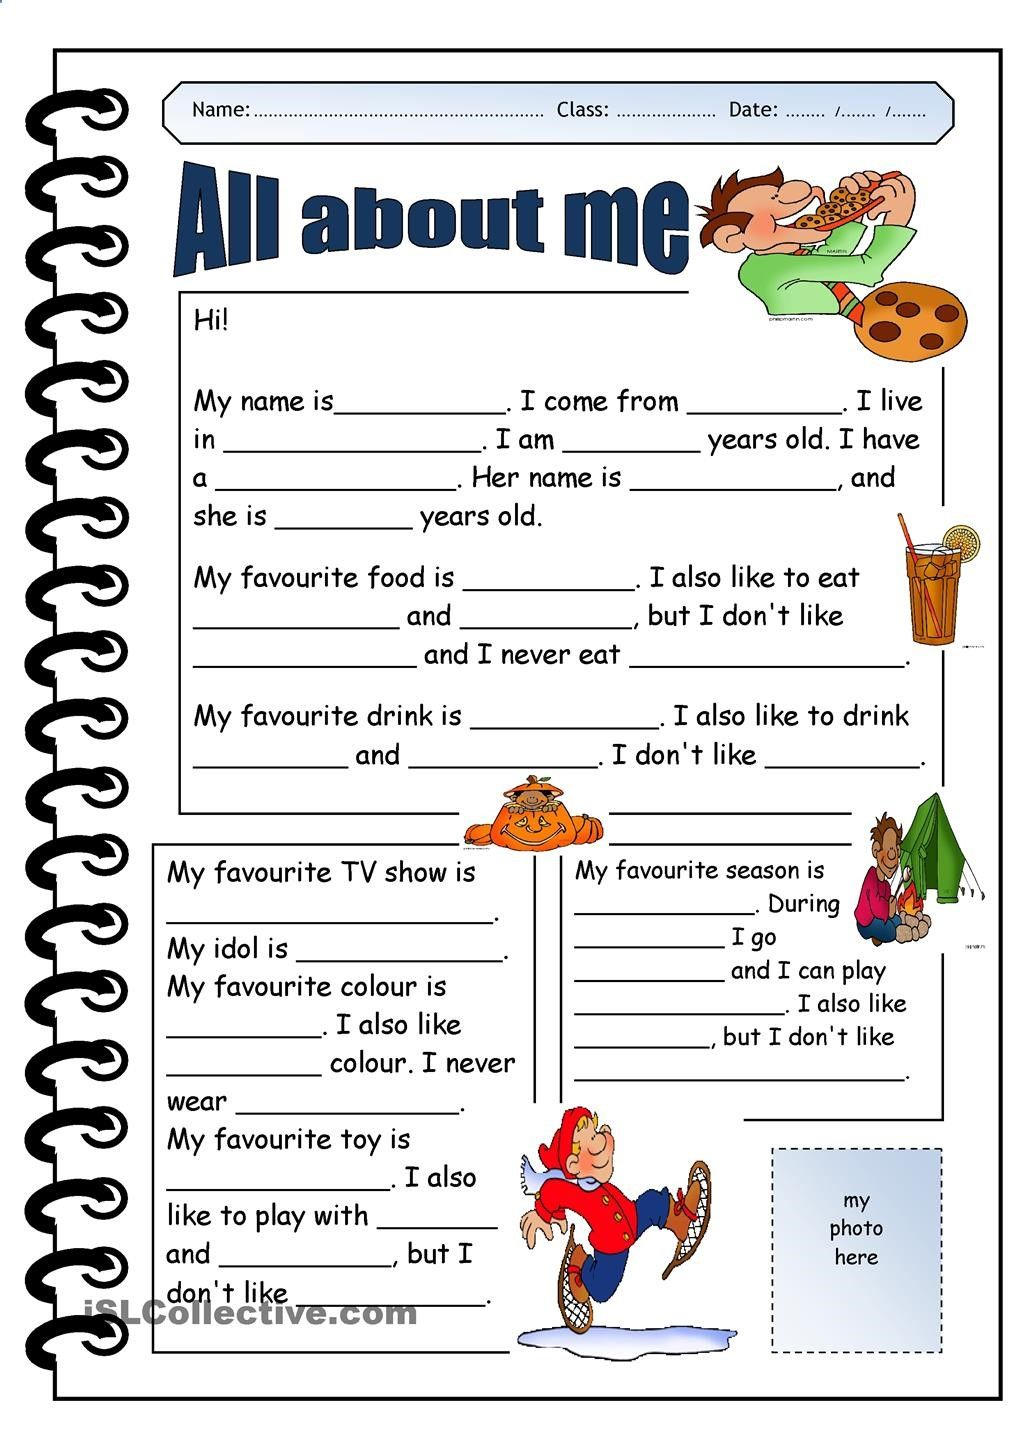 1000 Ideas About Window Wall On Pinterest: 1000 Ideas About All About Me Worksheet On Pinterest